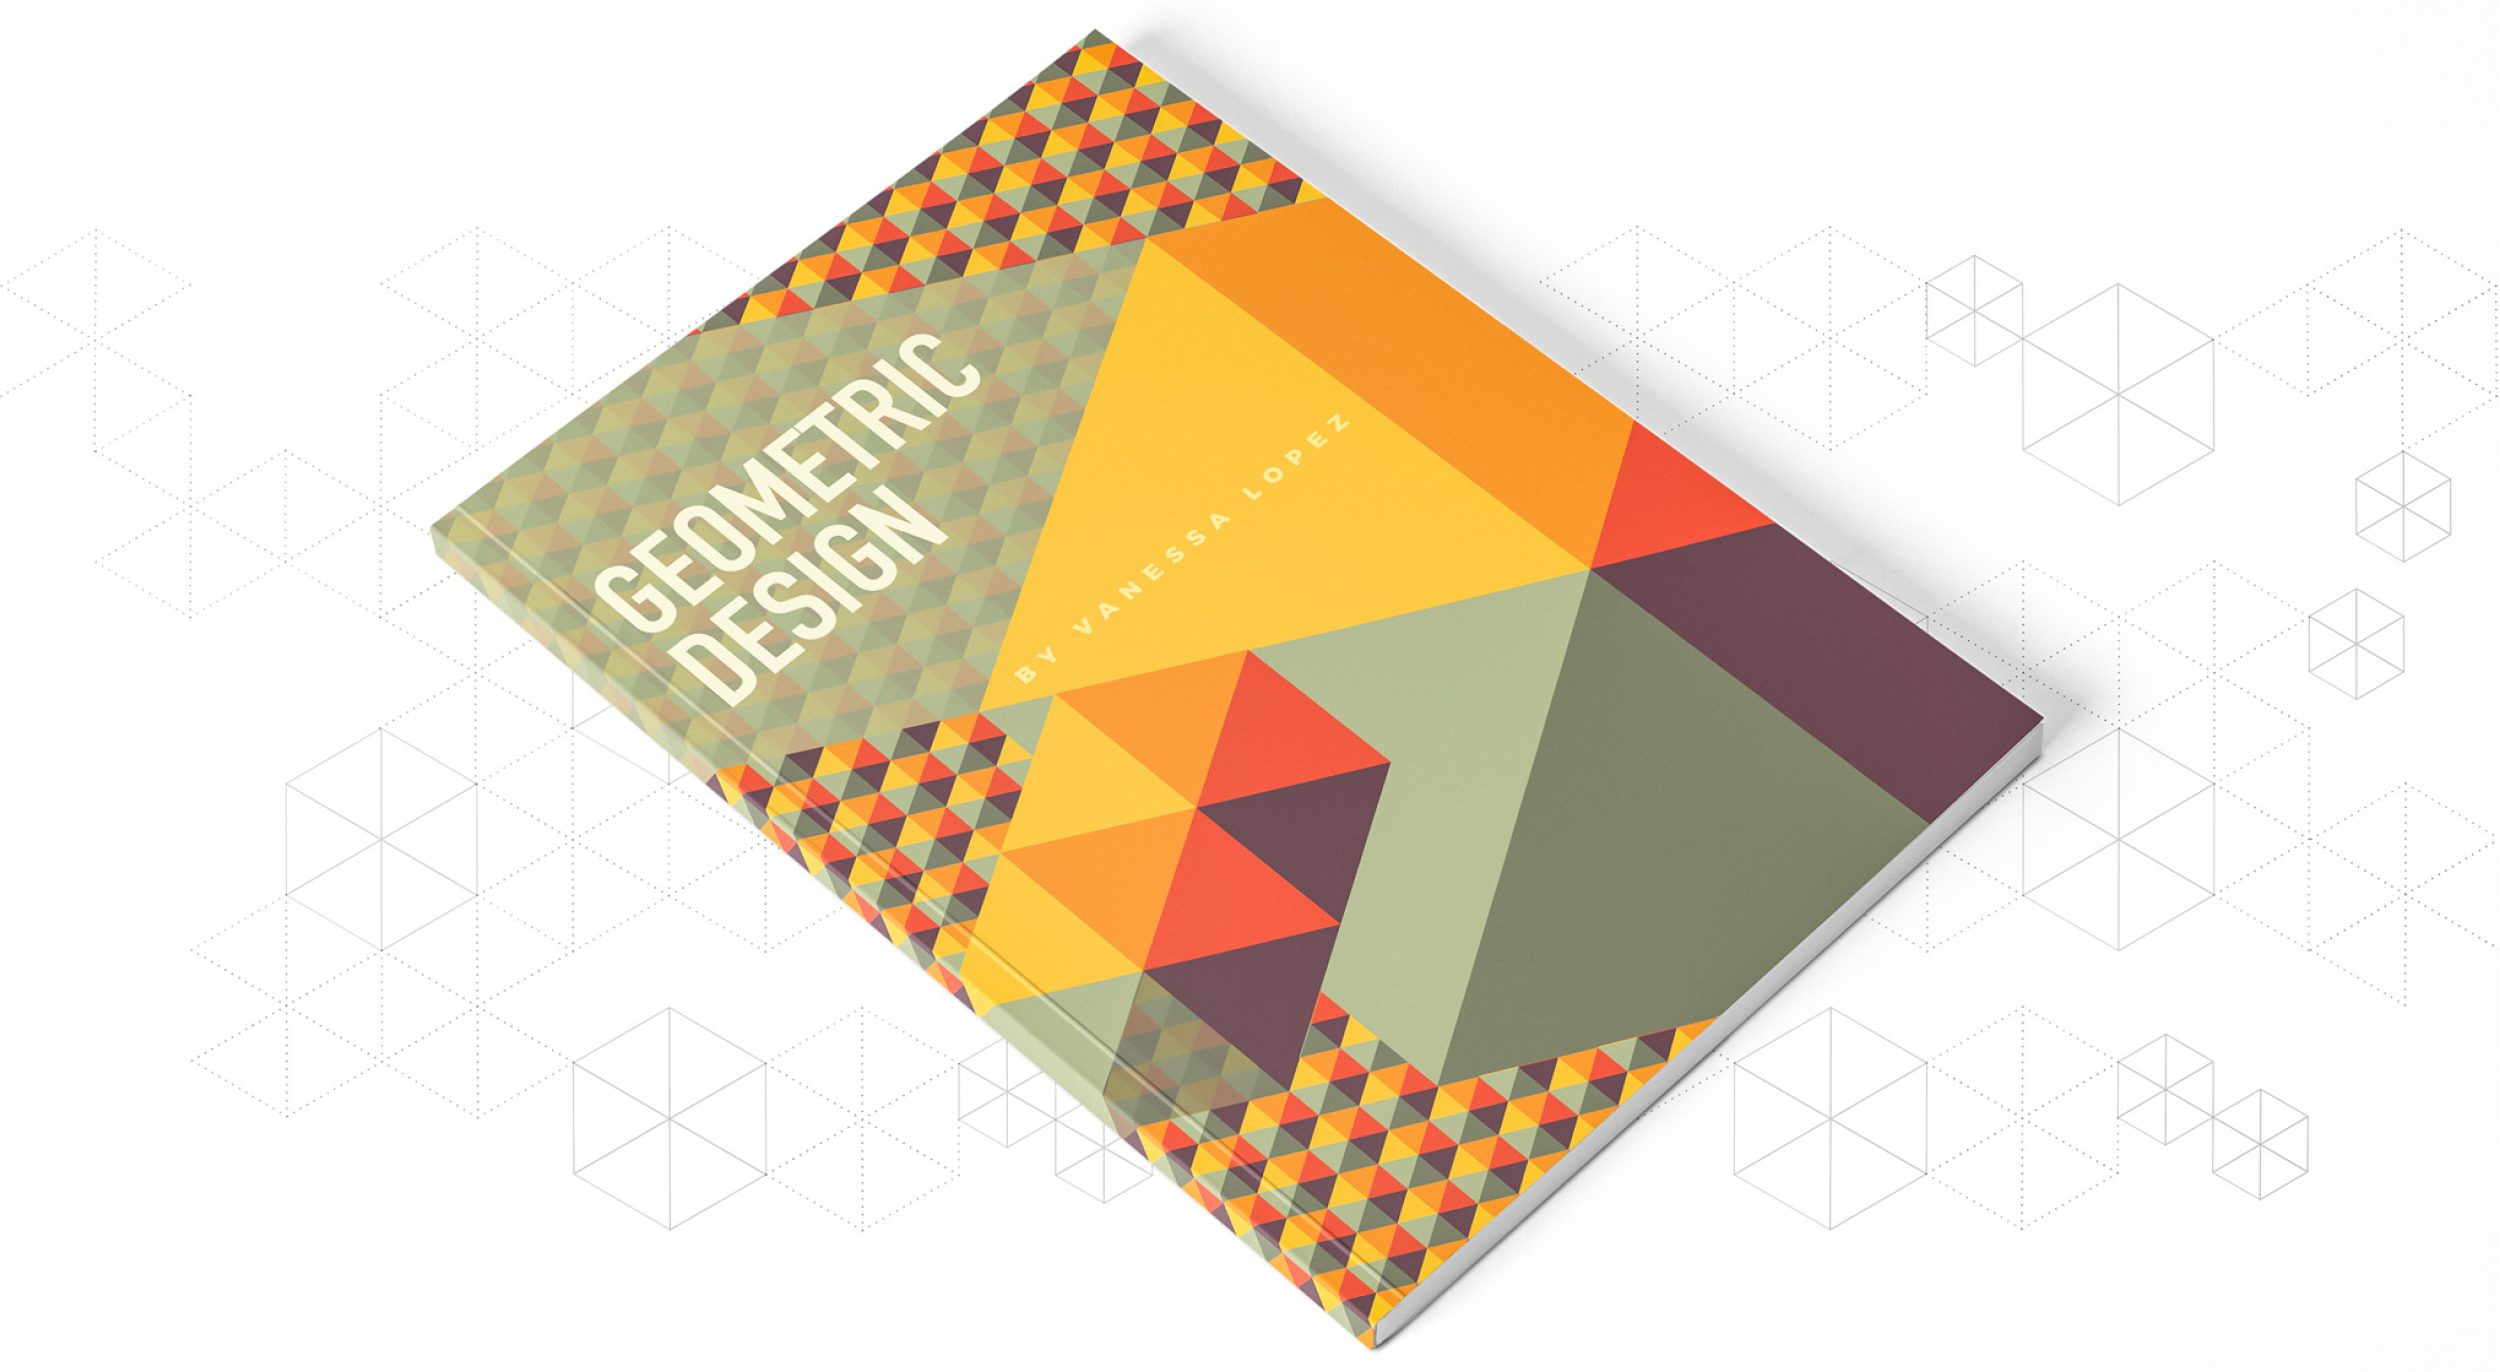 Book cover example using a cube pattern design